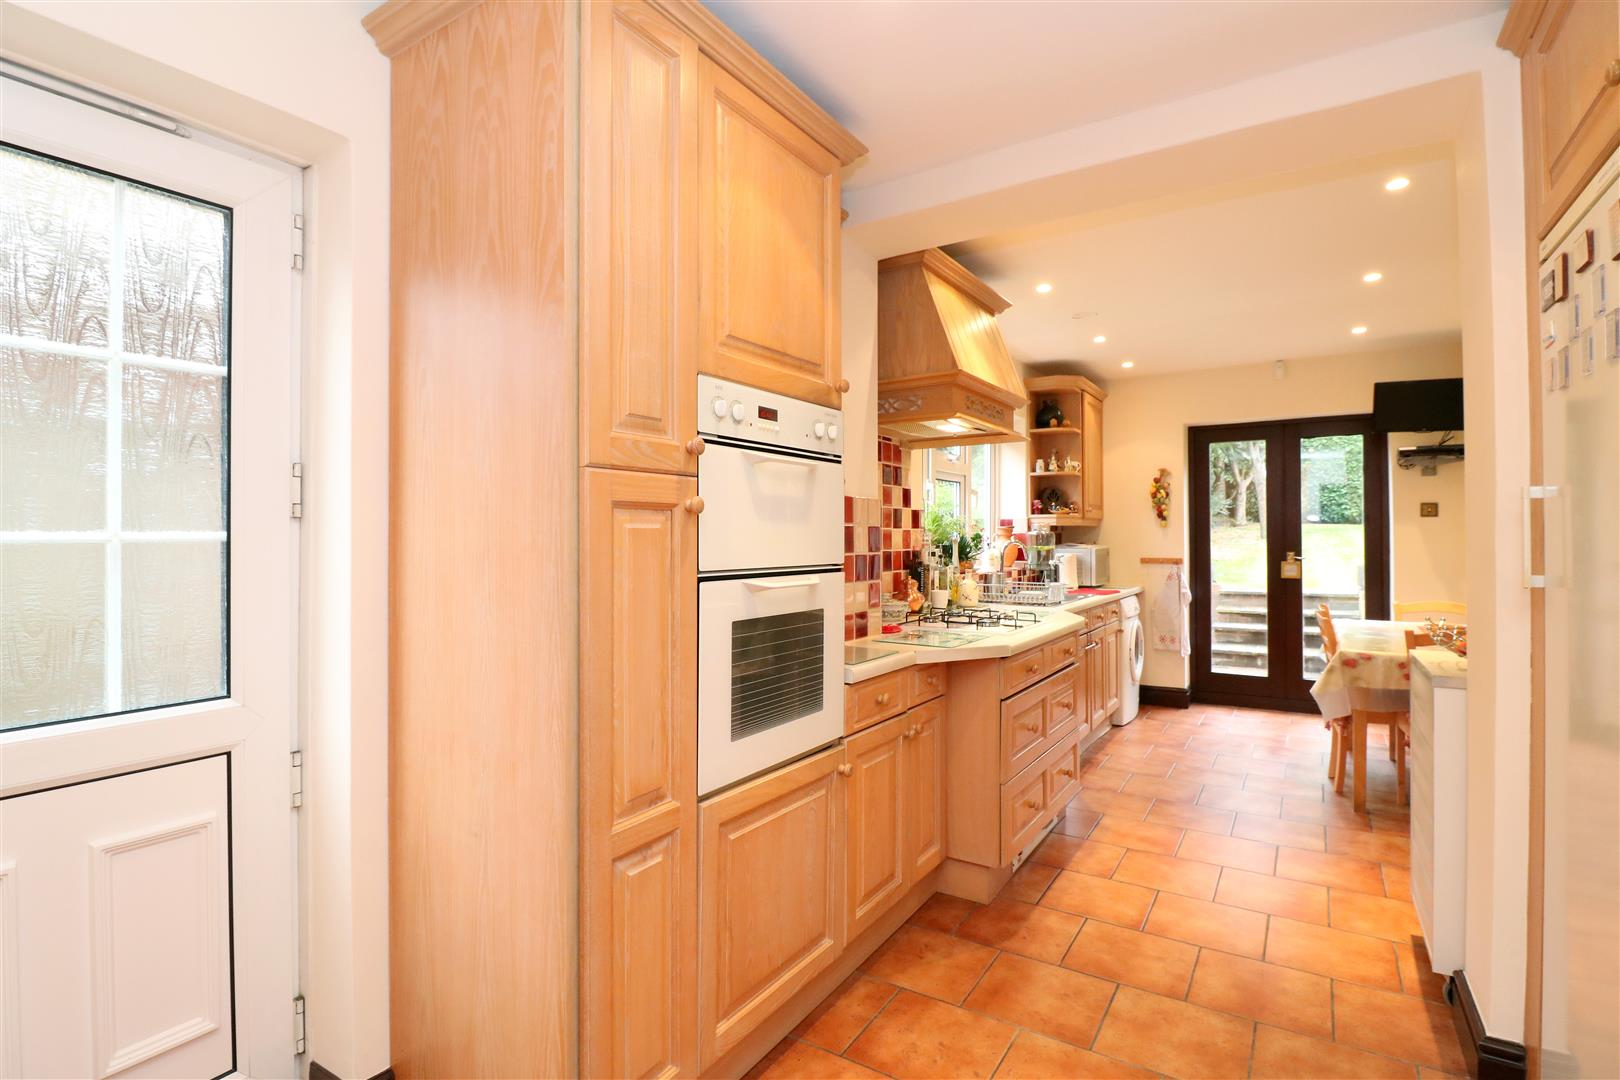 4 bed House for sale in Links Drive, Radlett - (Property Image 4)